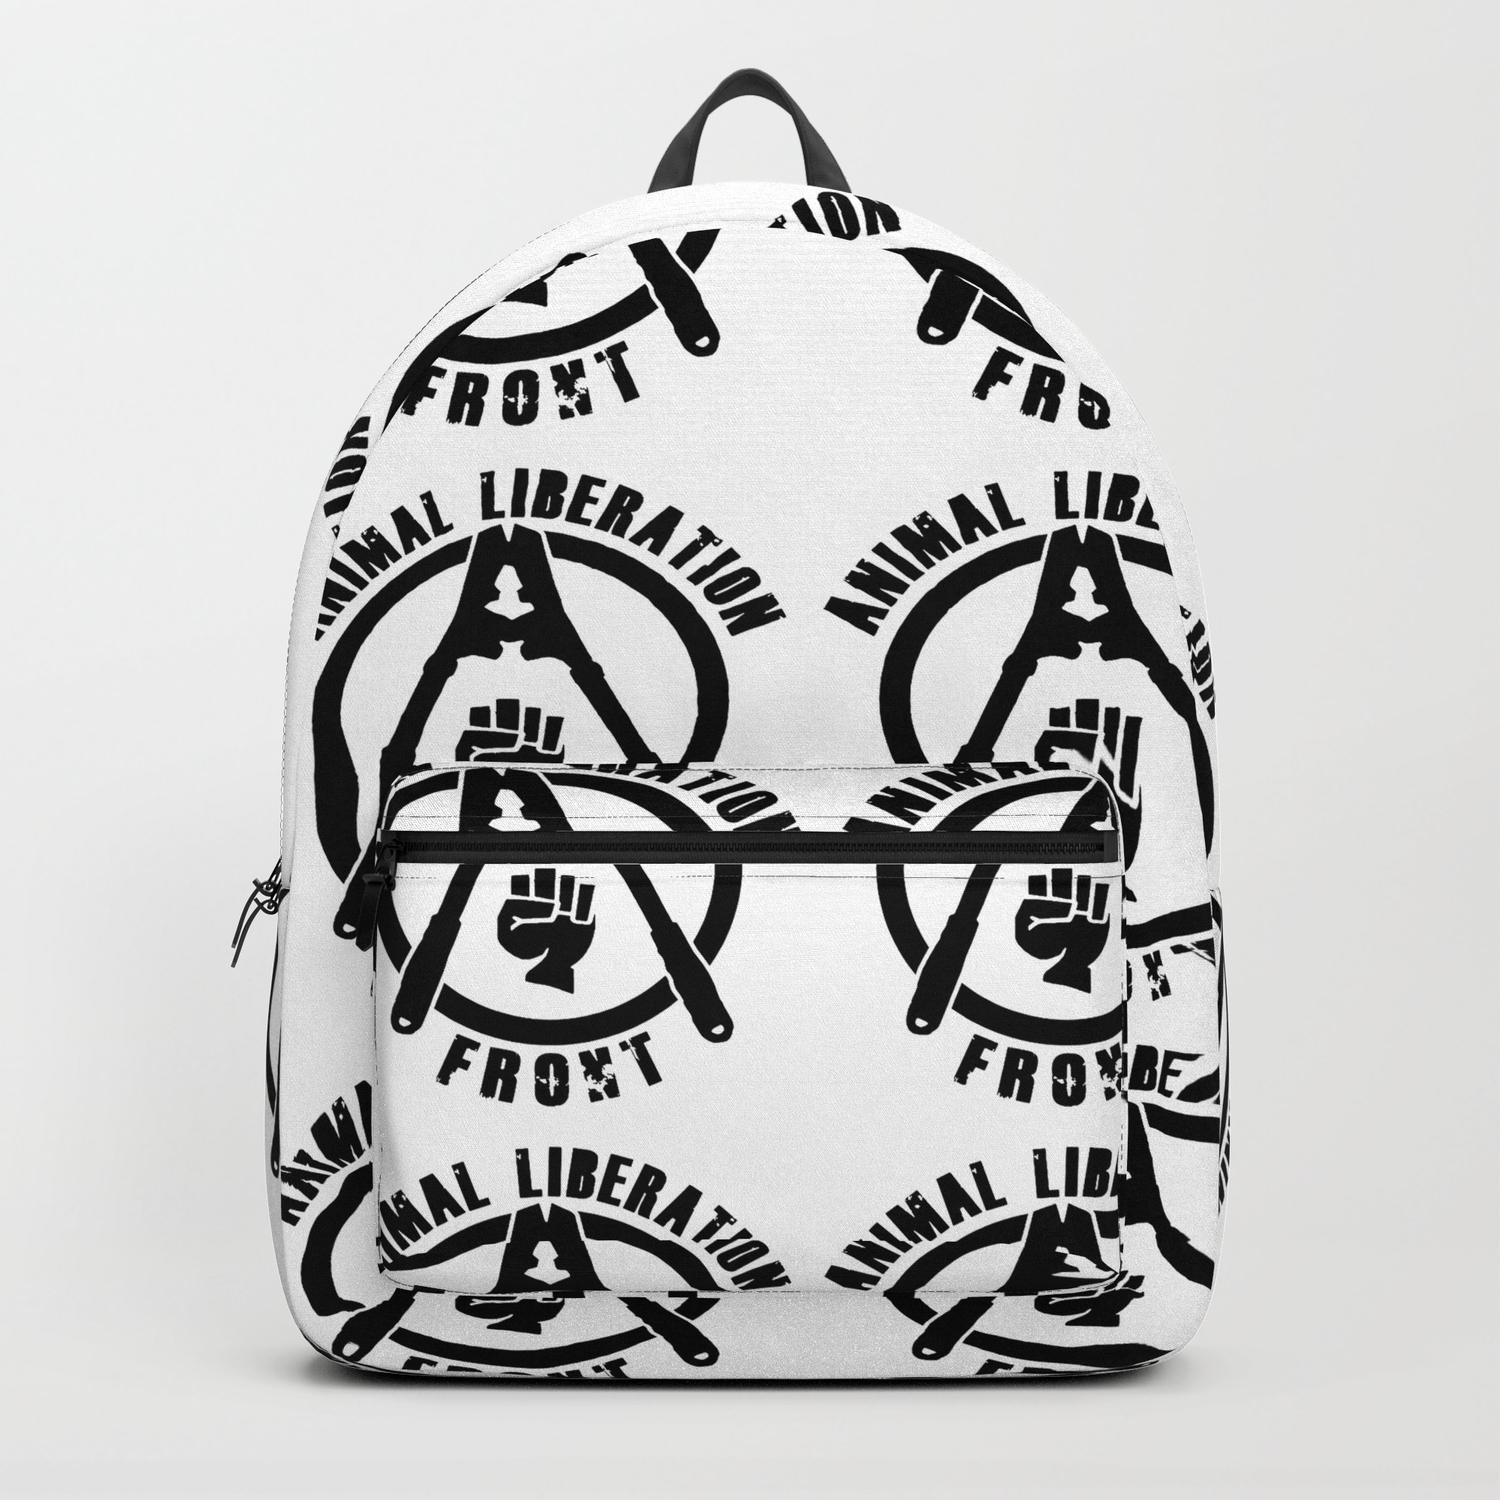 Animal Liberation Front Backpack By Edithwsmith